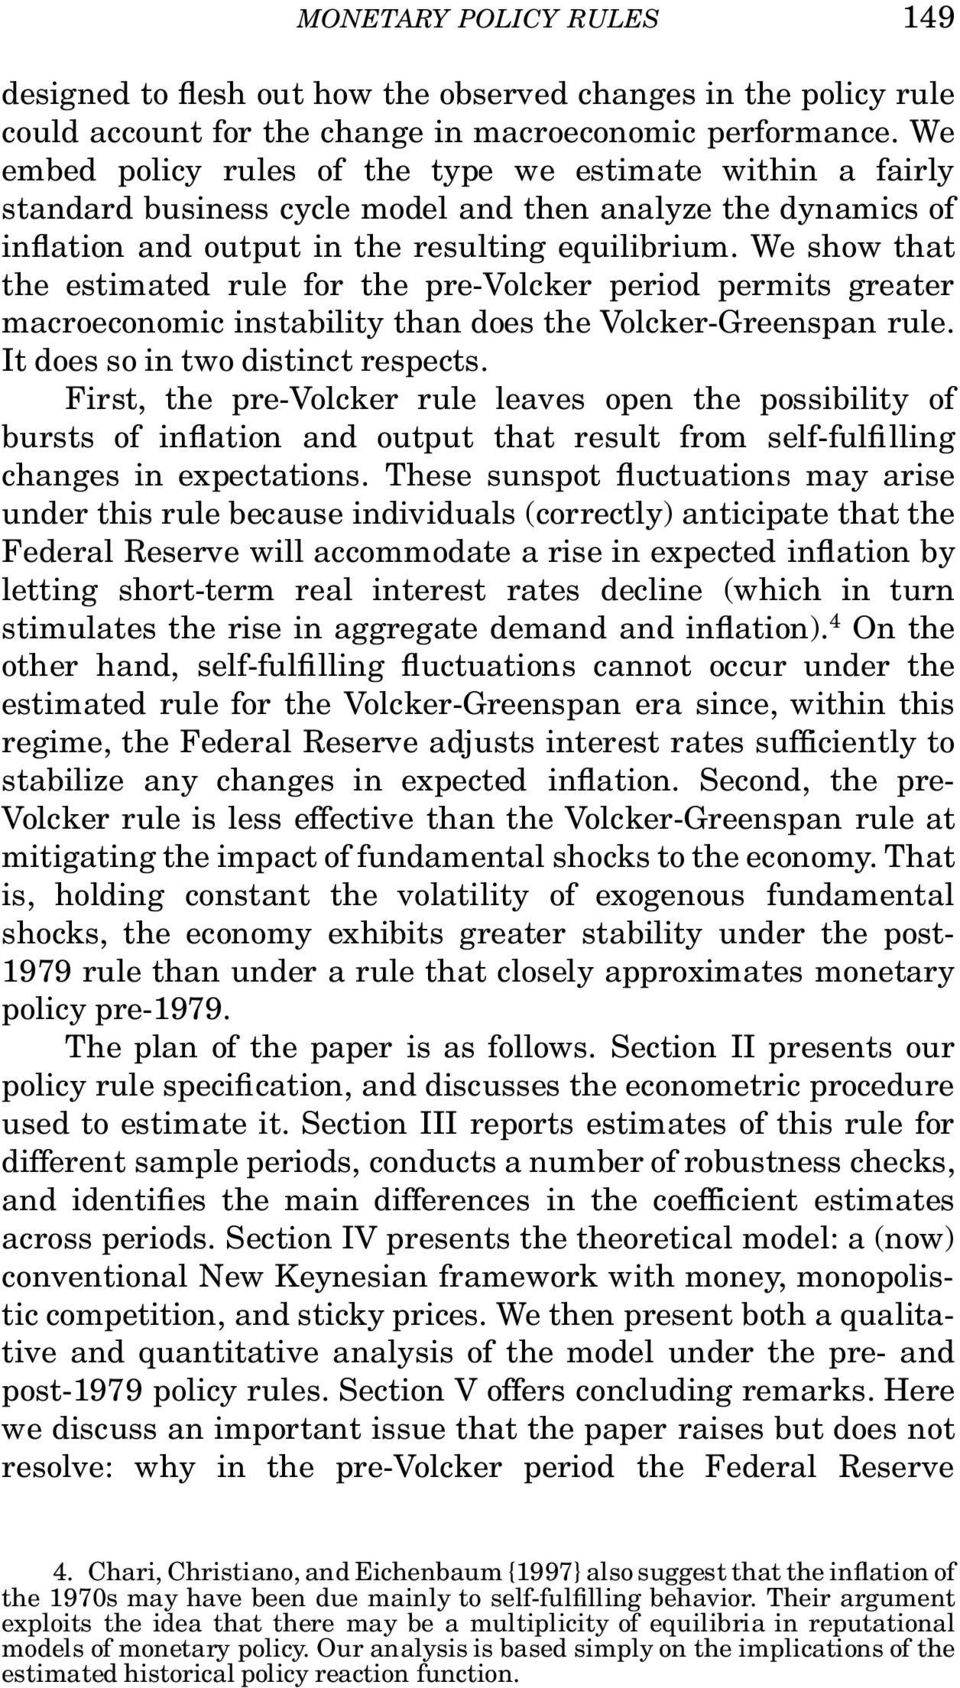 We show that the estimated rule for the pre-volcker period permits greater macroeconomic instability than does the Volcker-Greenspan rule. It does so in two distinct respects.